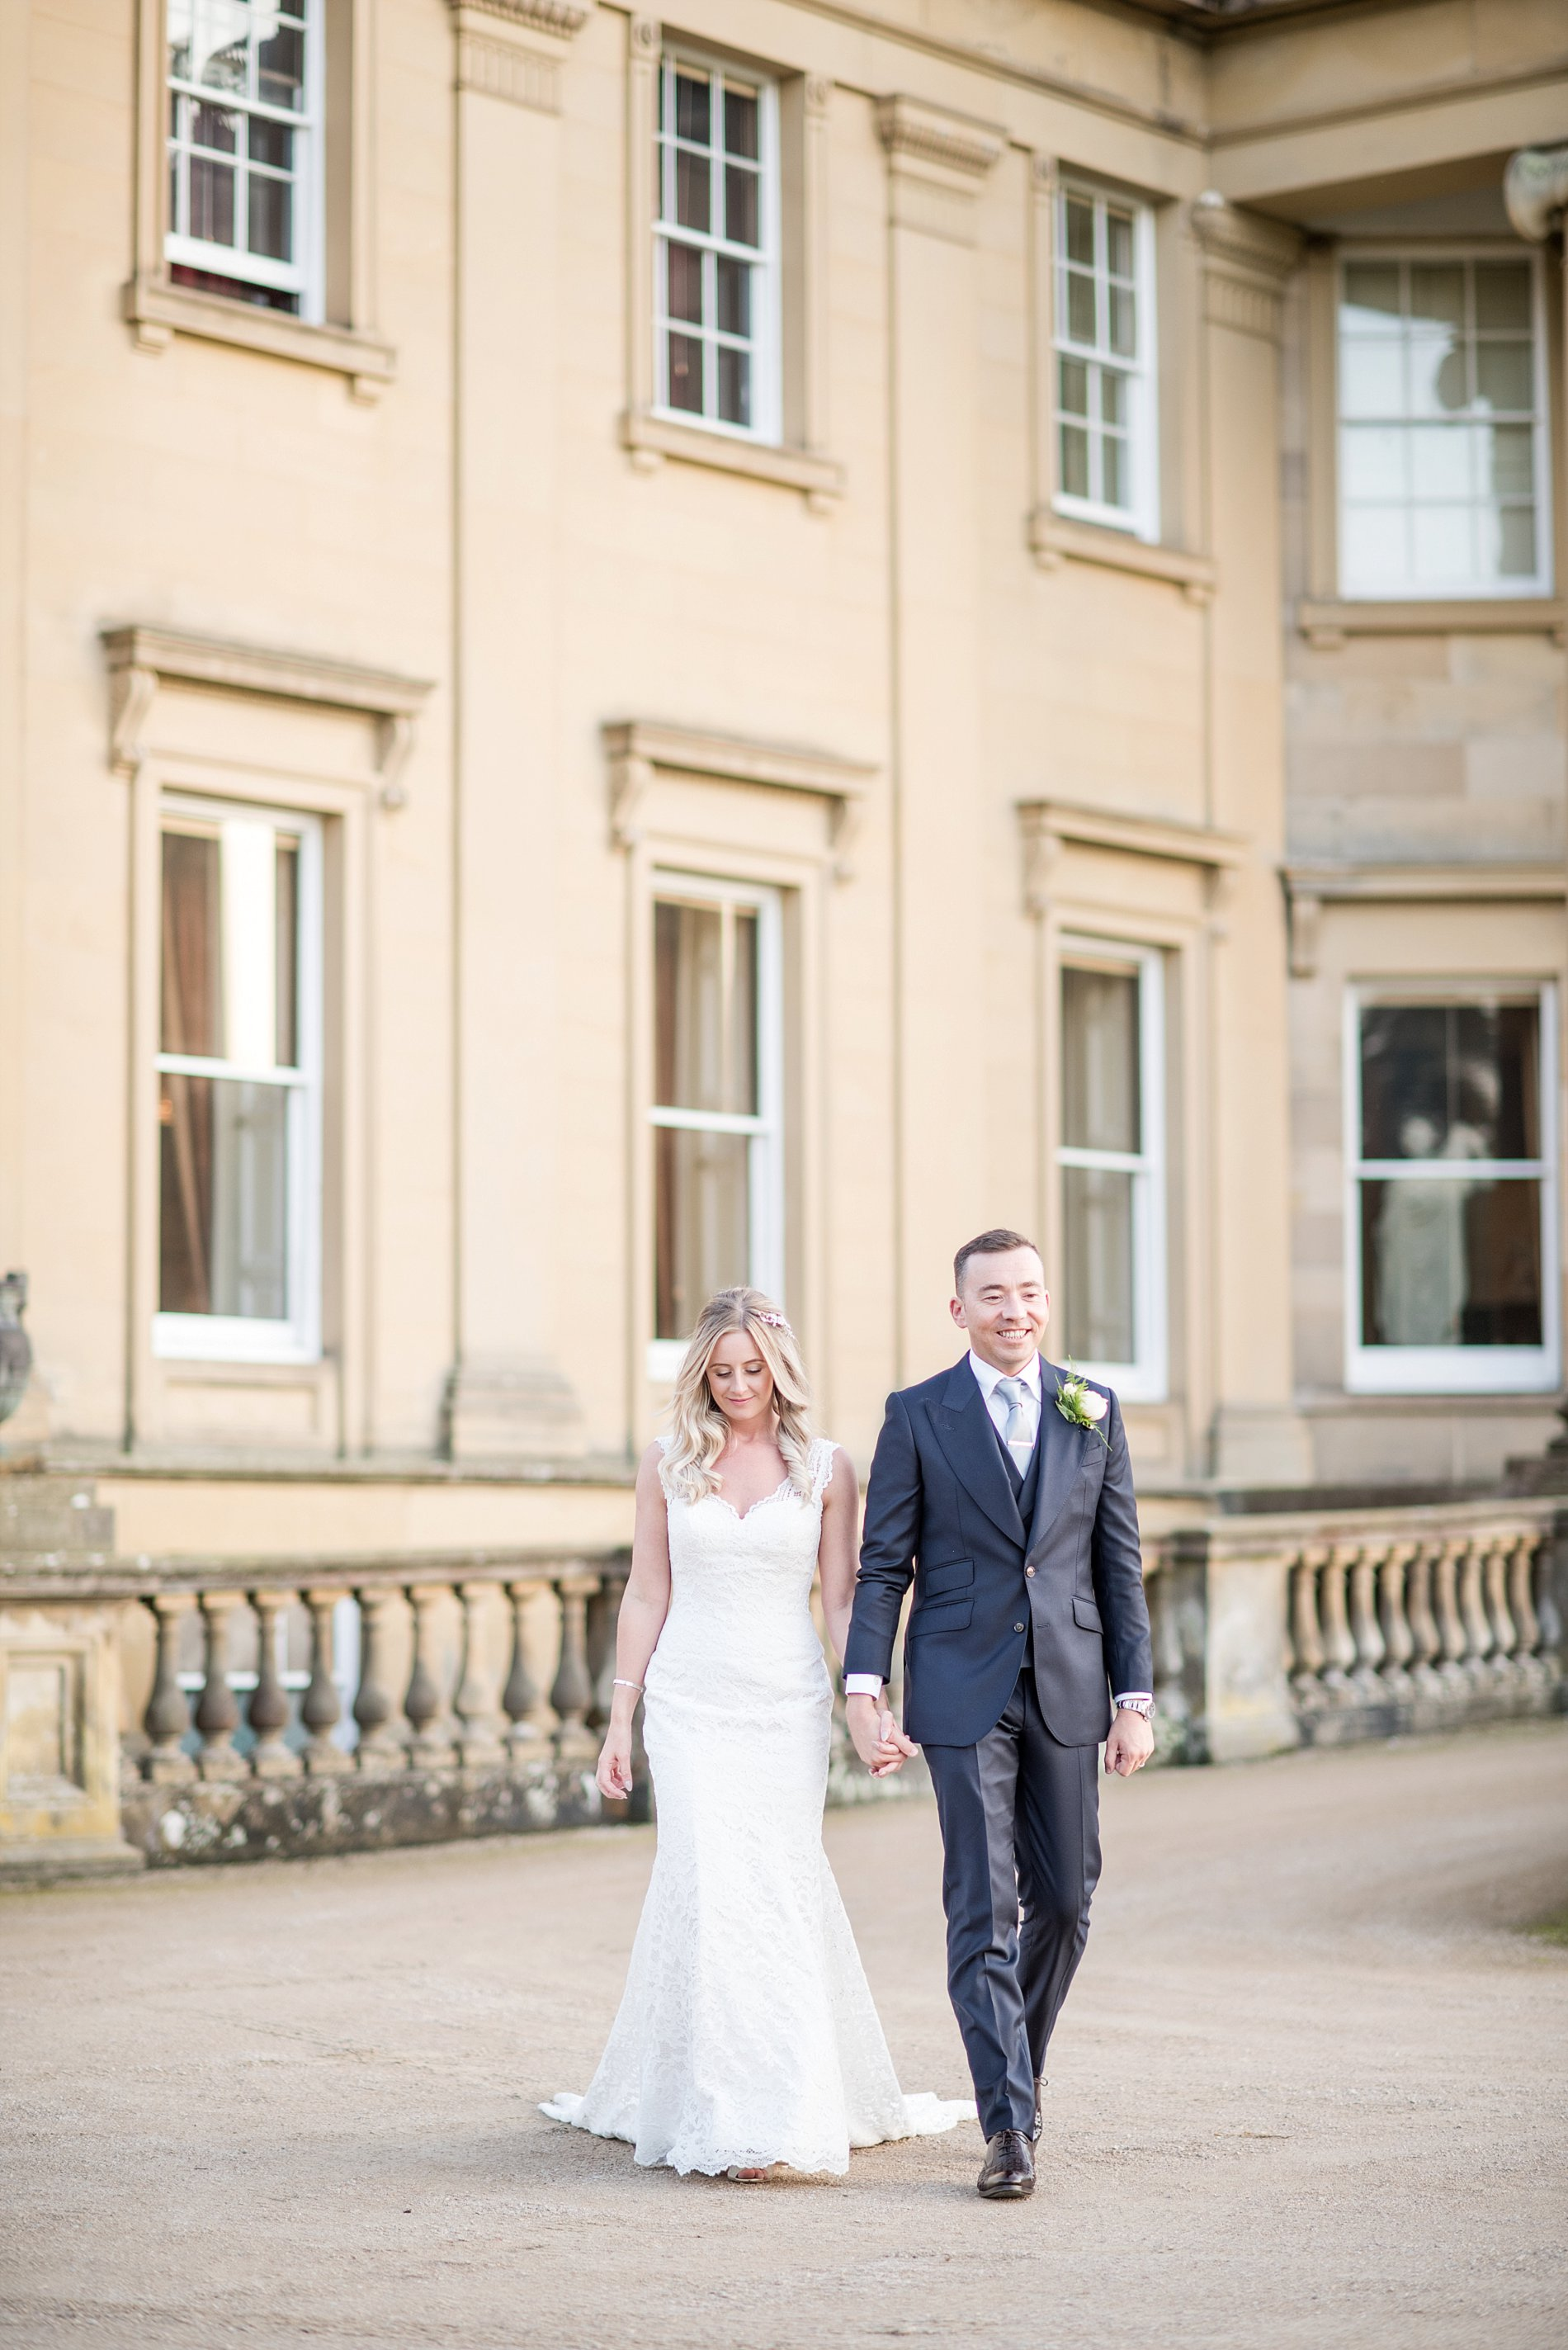 A Stylish Wedding at Broughton Hall (c) Jane Beadnell Photography (84)